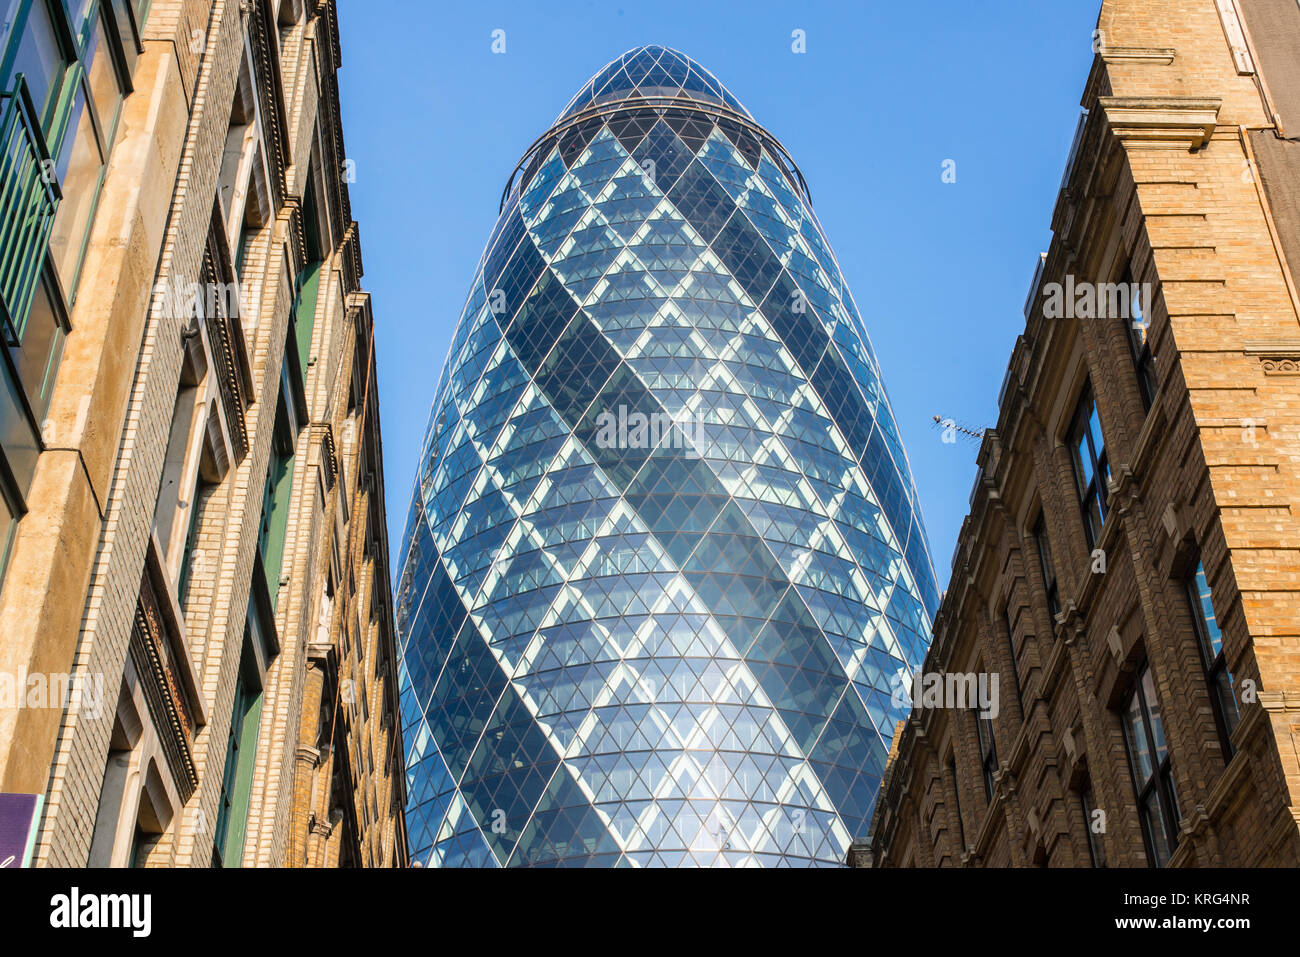 View of the Gherkin, 30 St Mary Axe  skyscraper building from below towering over nearby office buildings. St Mary - Stock Image